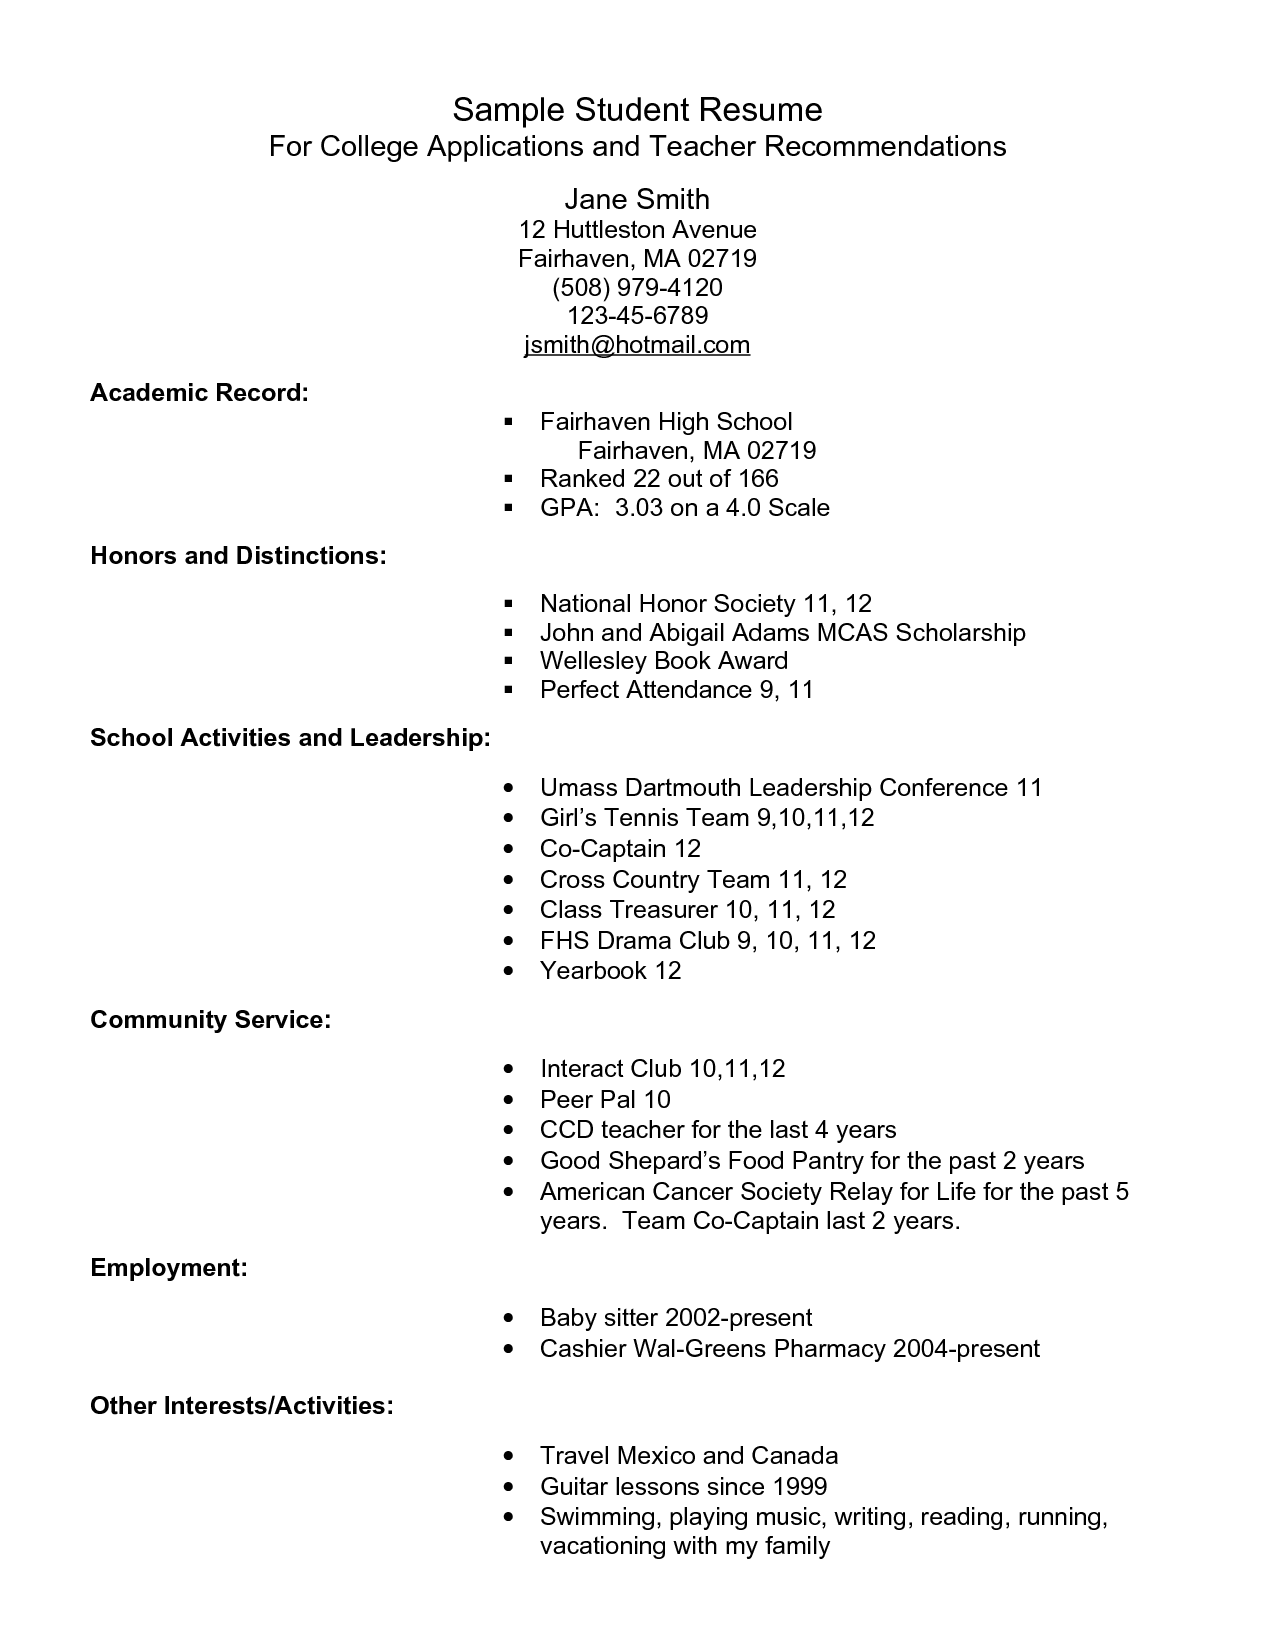 Student Resume Example Resume For High School Students For College Applications